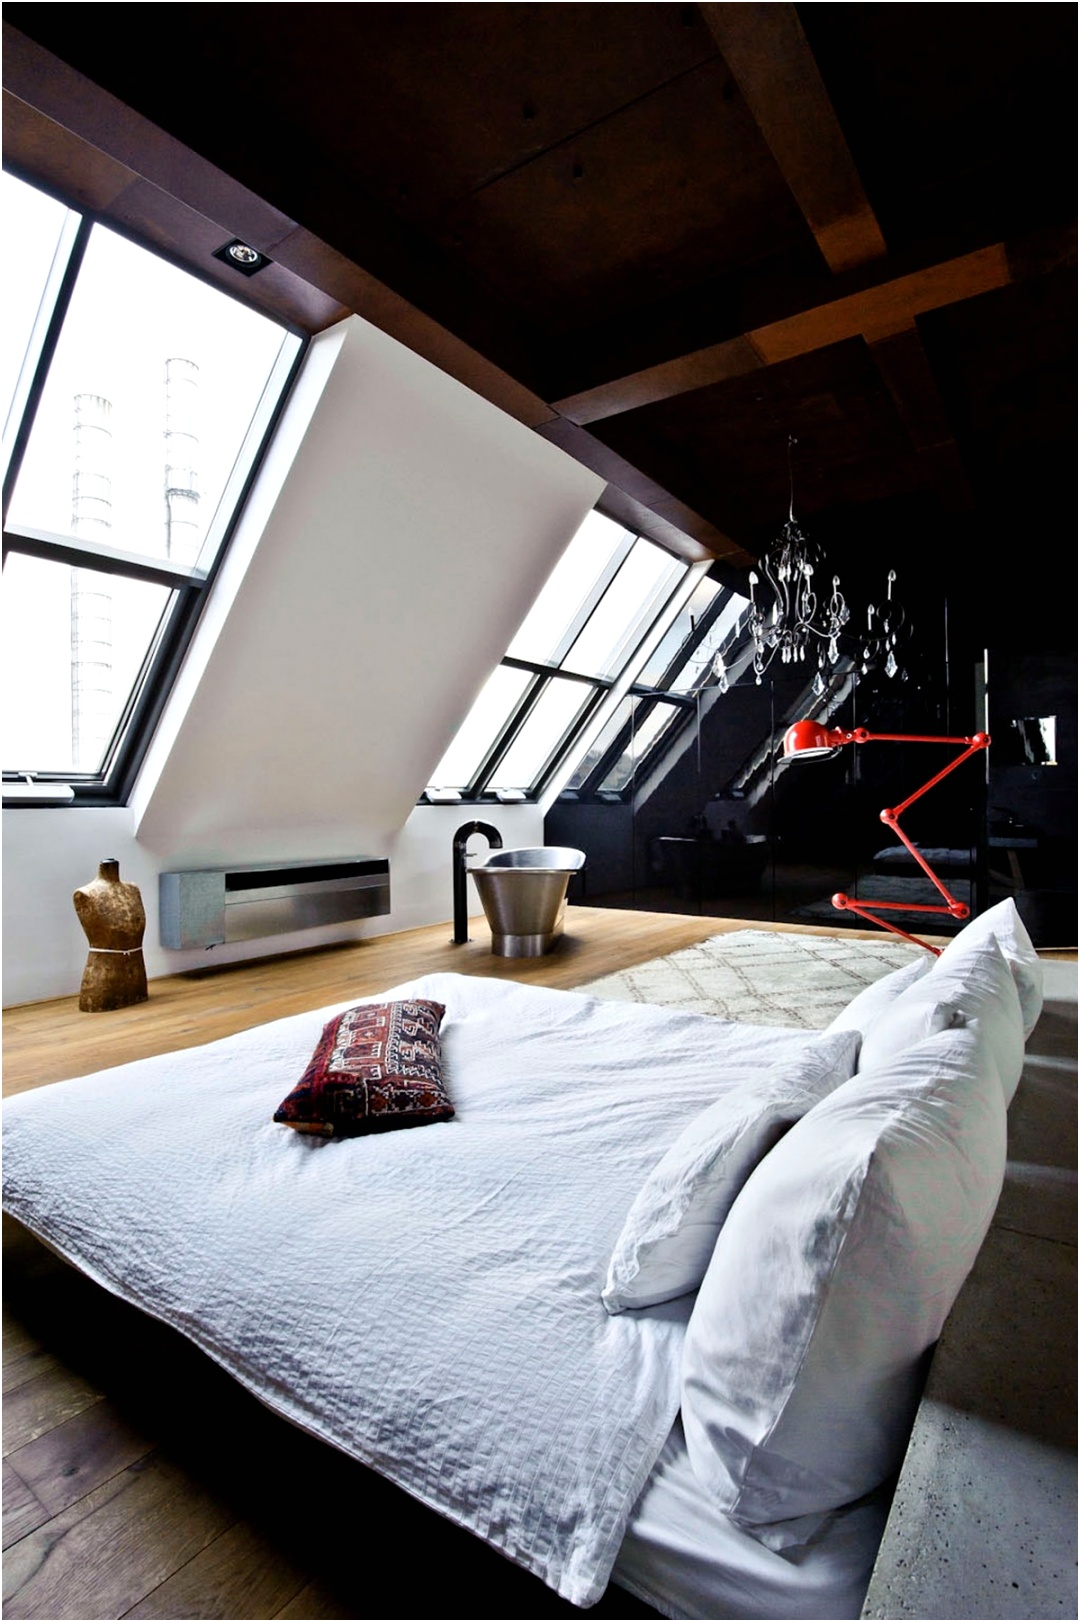 stainless steel tub white bed attic space